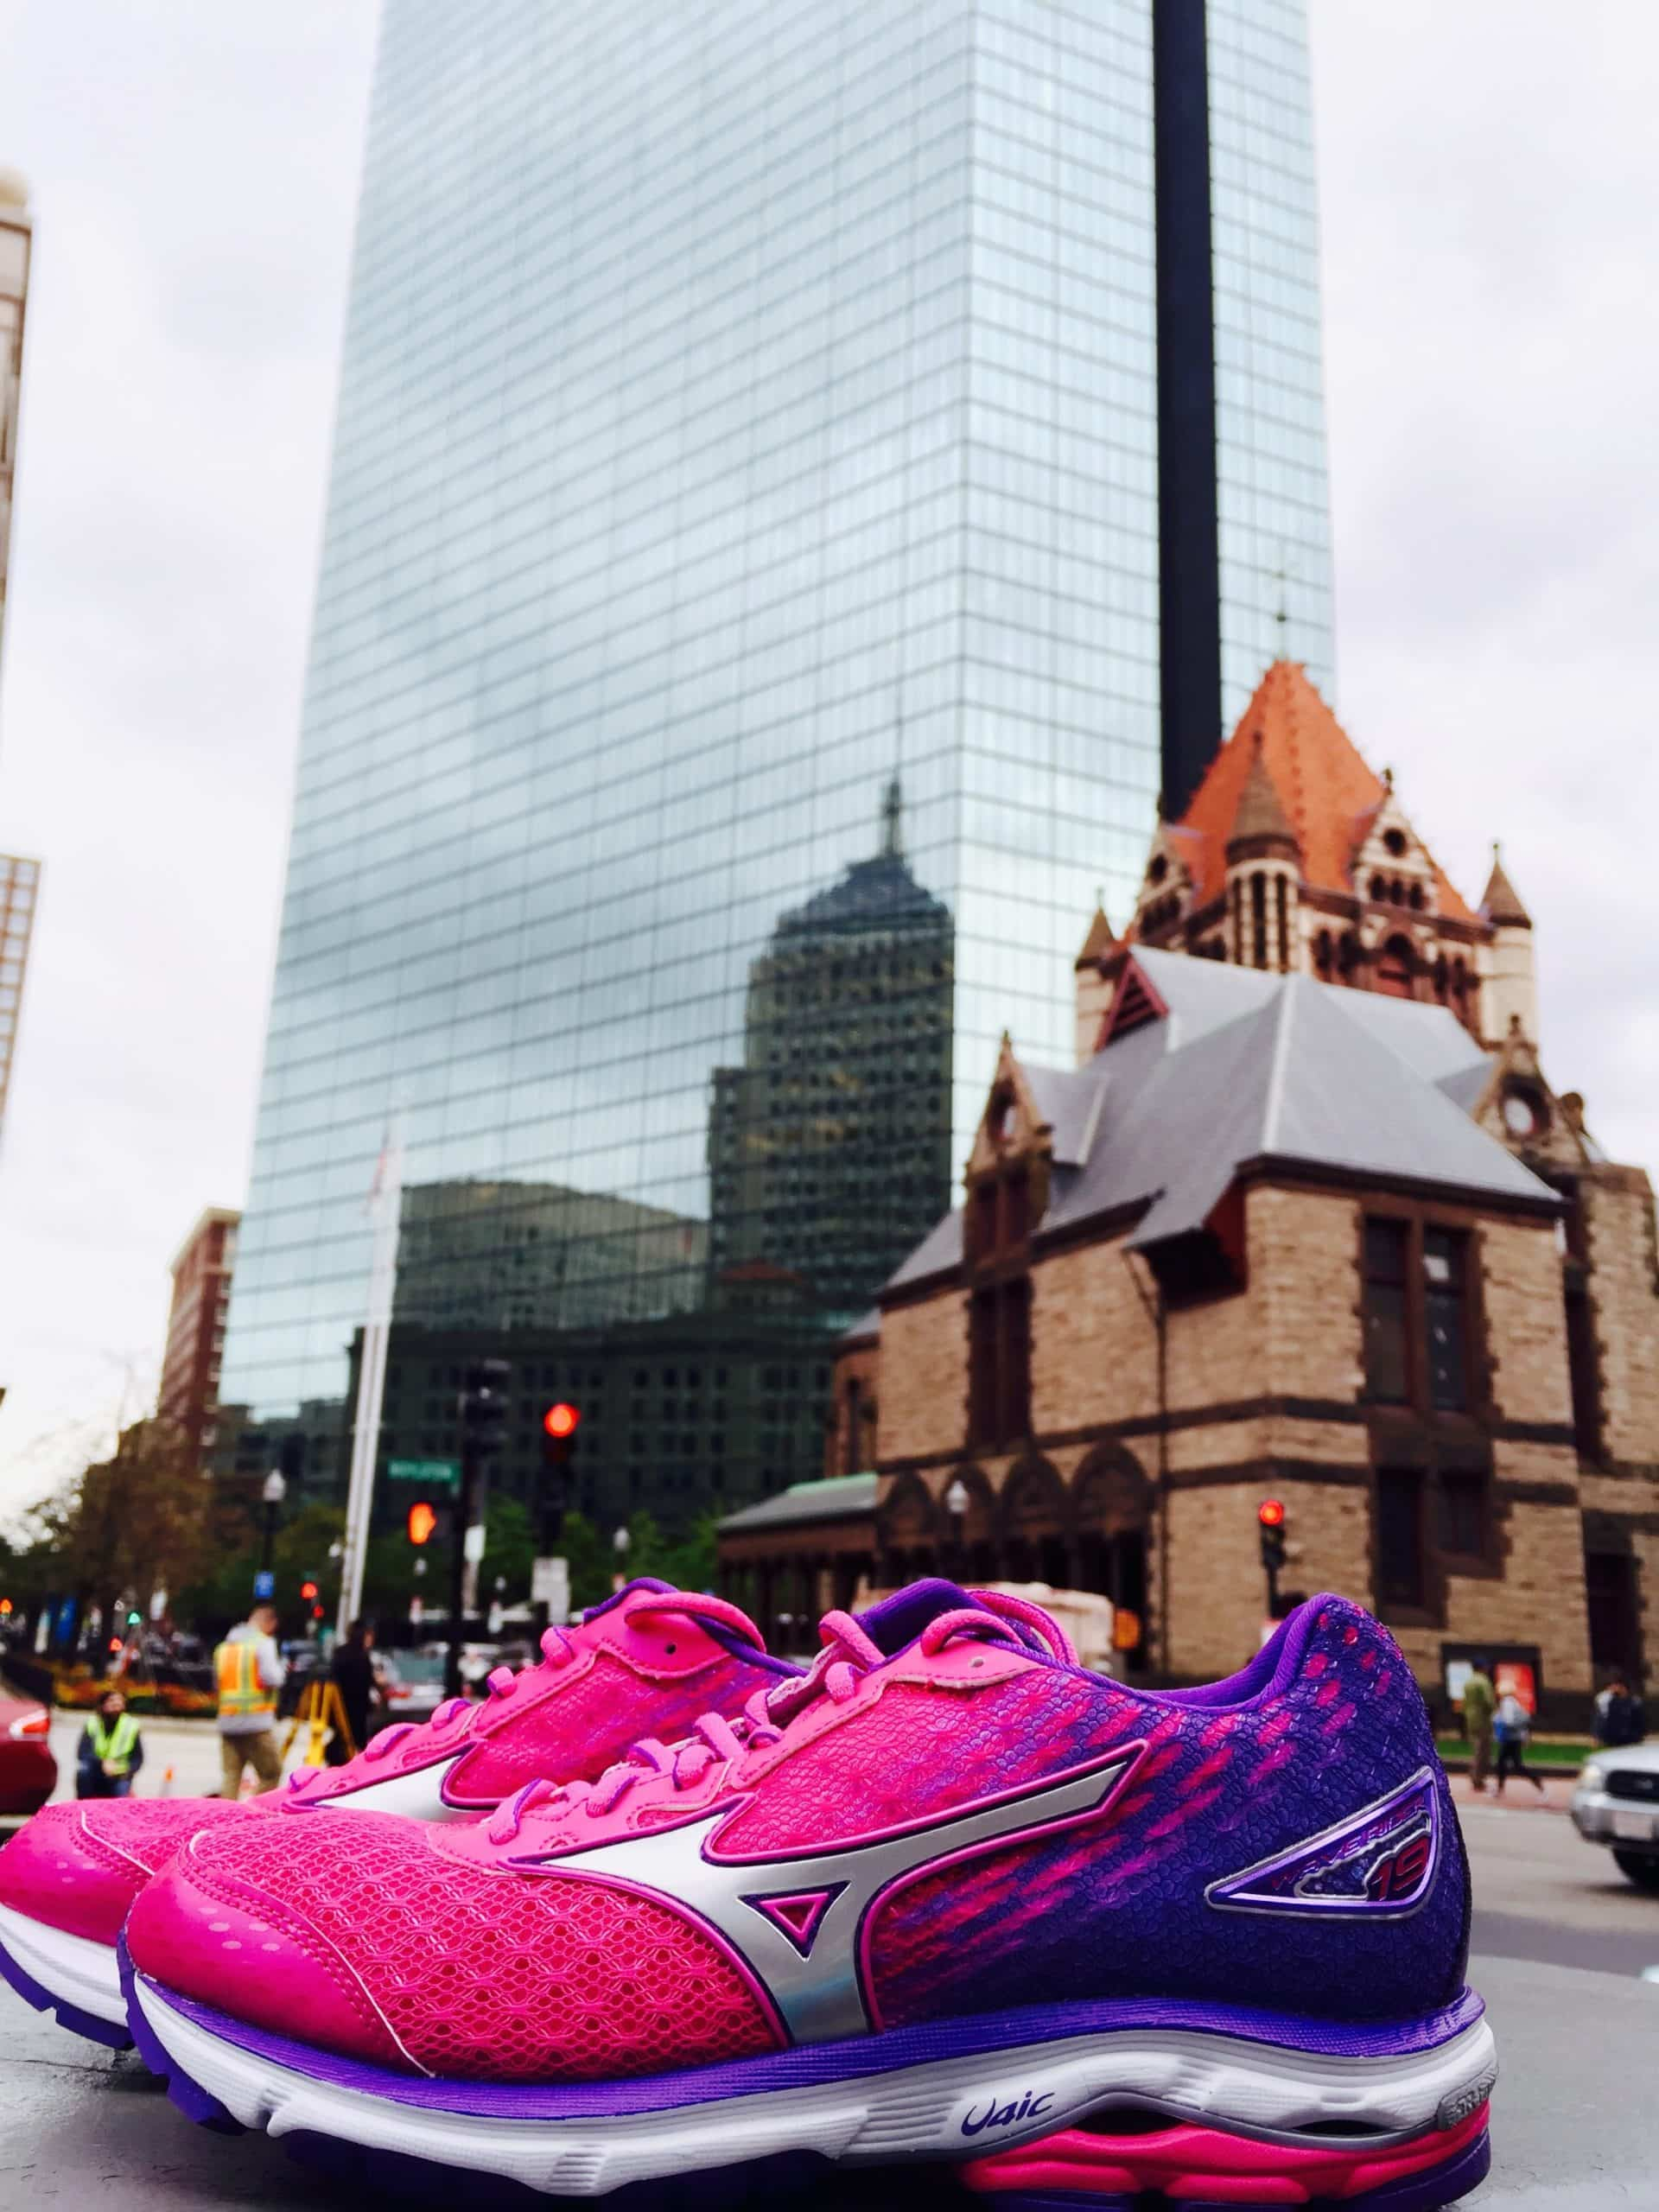 new style 6acbd 03cf6 SHOE REVIEW: Mizuno Wave Rider 19 | Marathon Sports